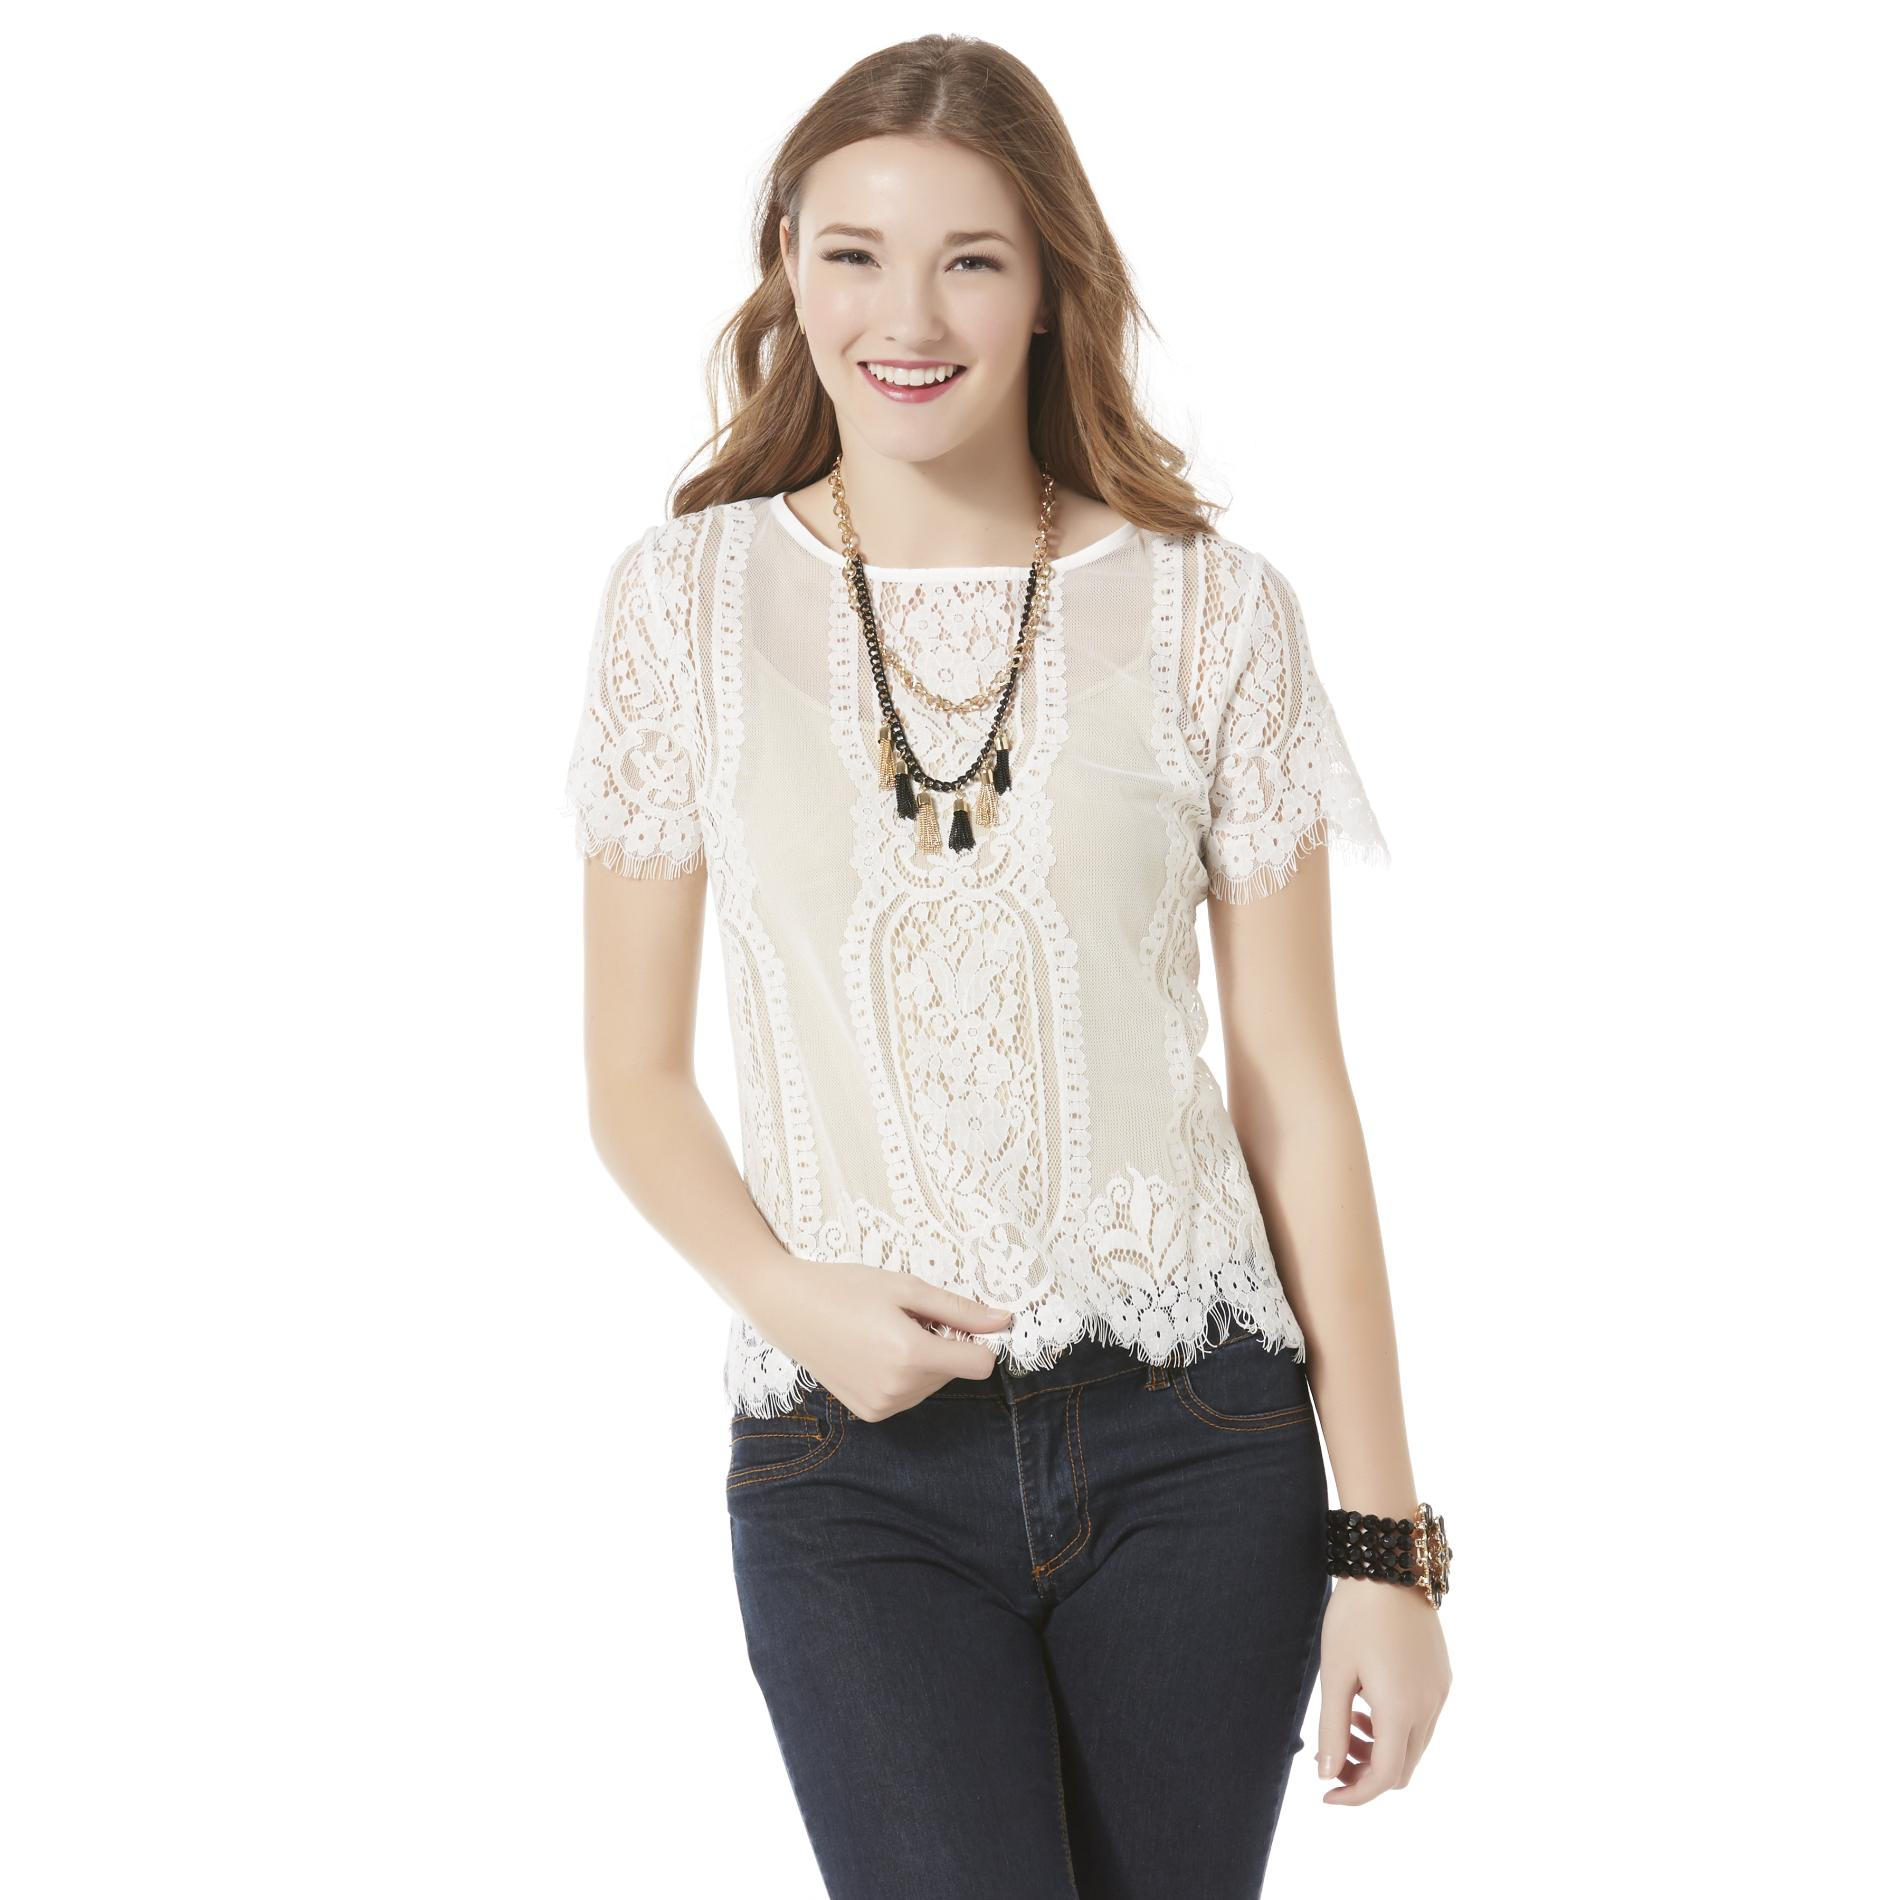 Juniors Lace Tops. Showing 40 of 76 results that match your query. Search Product Result. Product - Women Lace Designed Top Wearing Shirt and Blouse Black. Product Image. Price $ Product Title. Women Lace Designed Top Wearing Shirt and Blouse Black. Add To Cart. There is a problem adding to cart. Please try again.